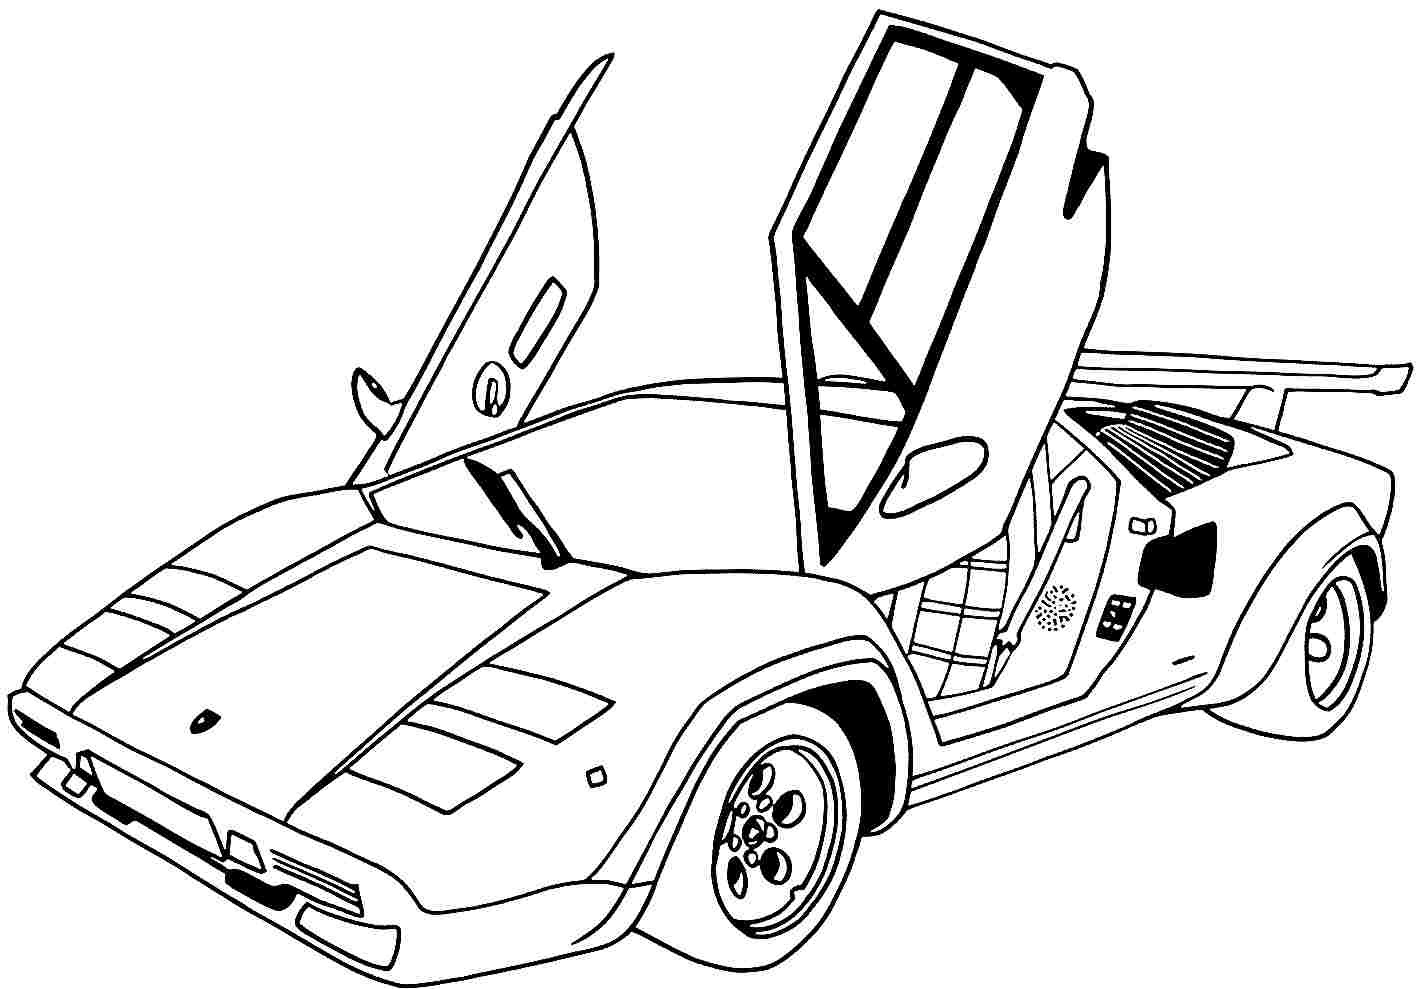 car drawing for coloring race car coloring pages for kids at getdrawings free coloring for drawing car